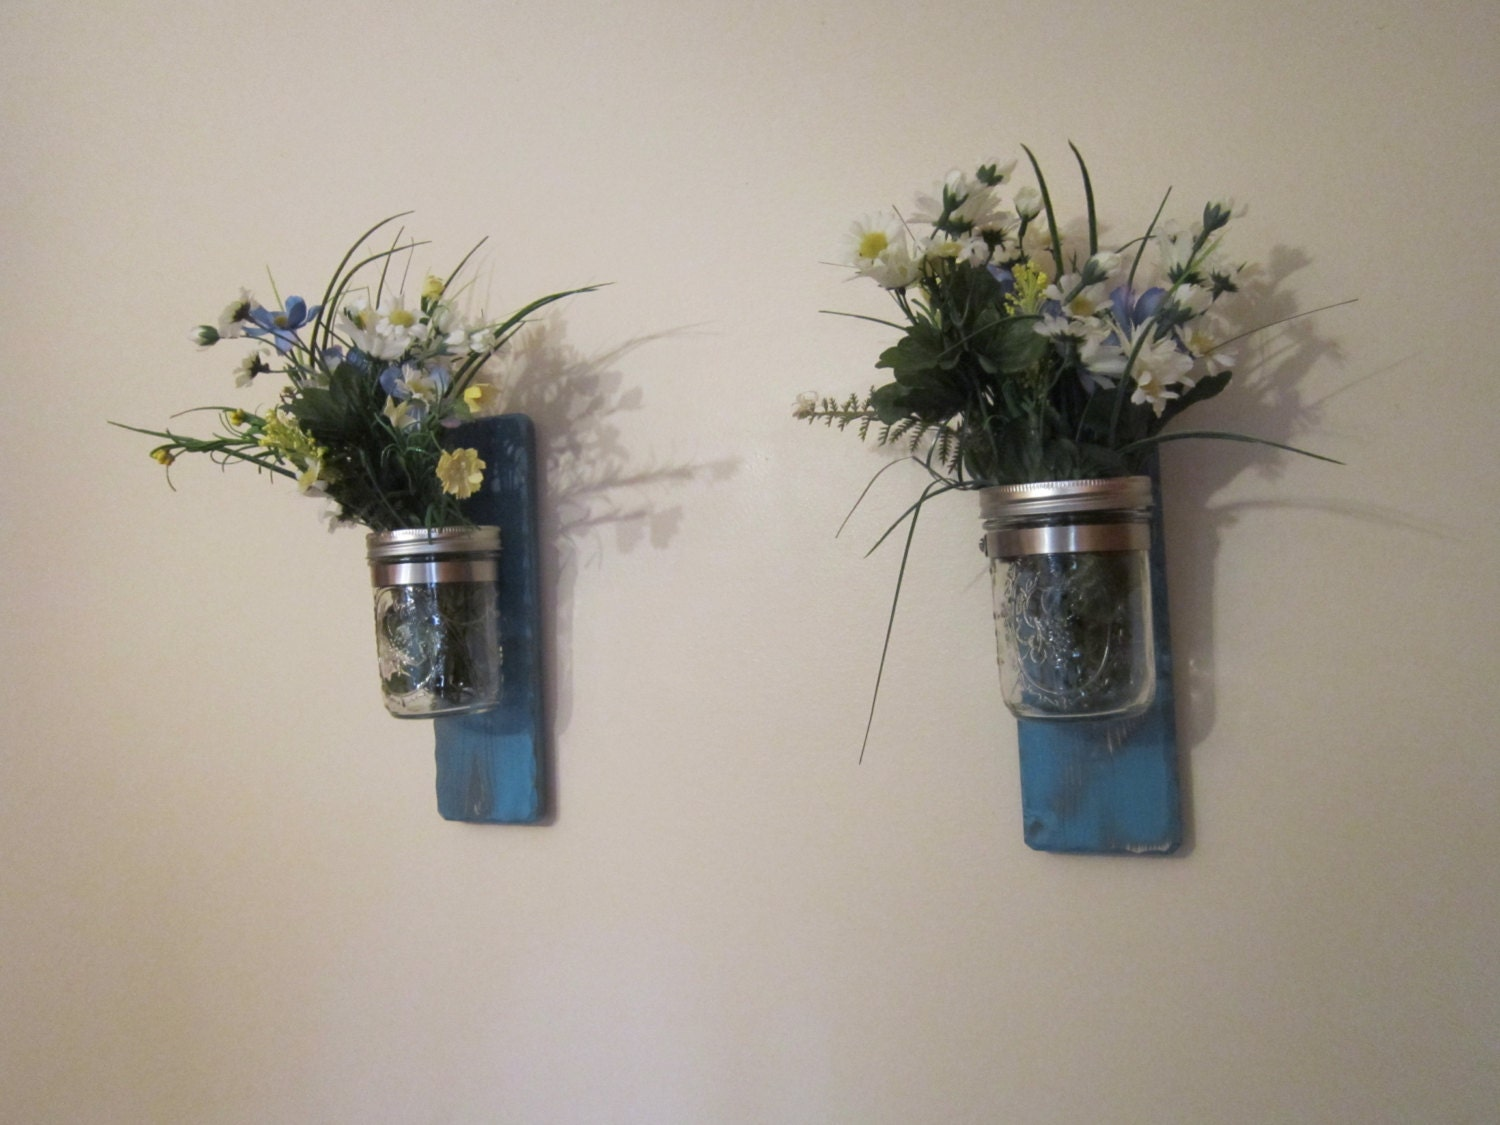 Wall Decor With Mason Jars : Chandeliers pendant lights